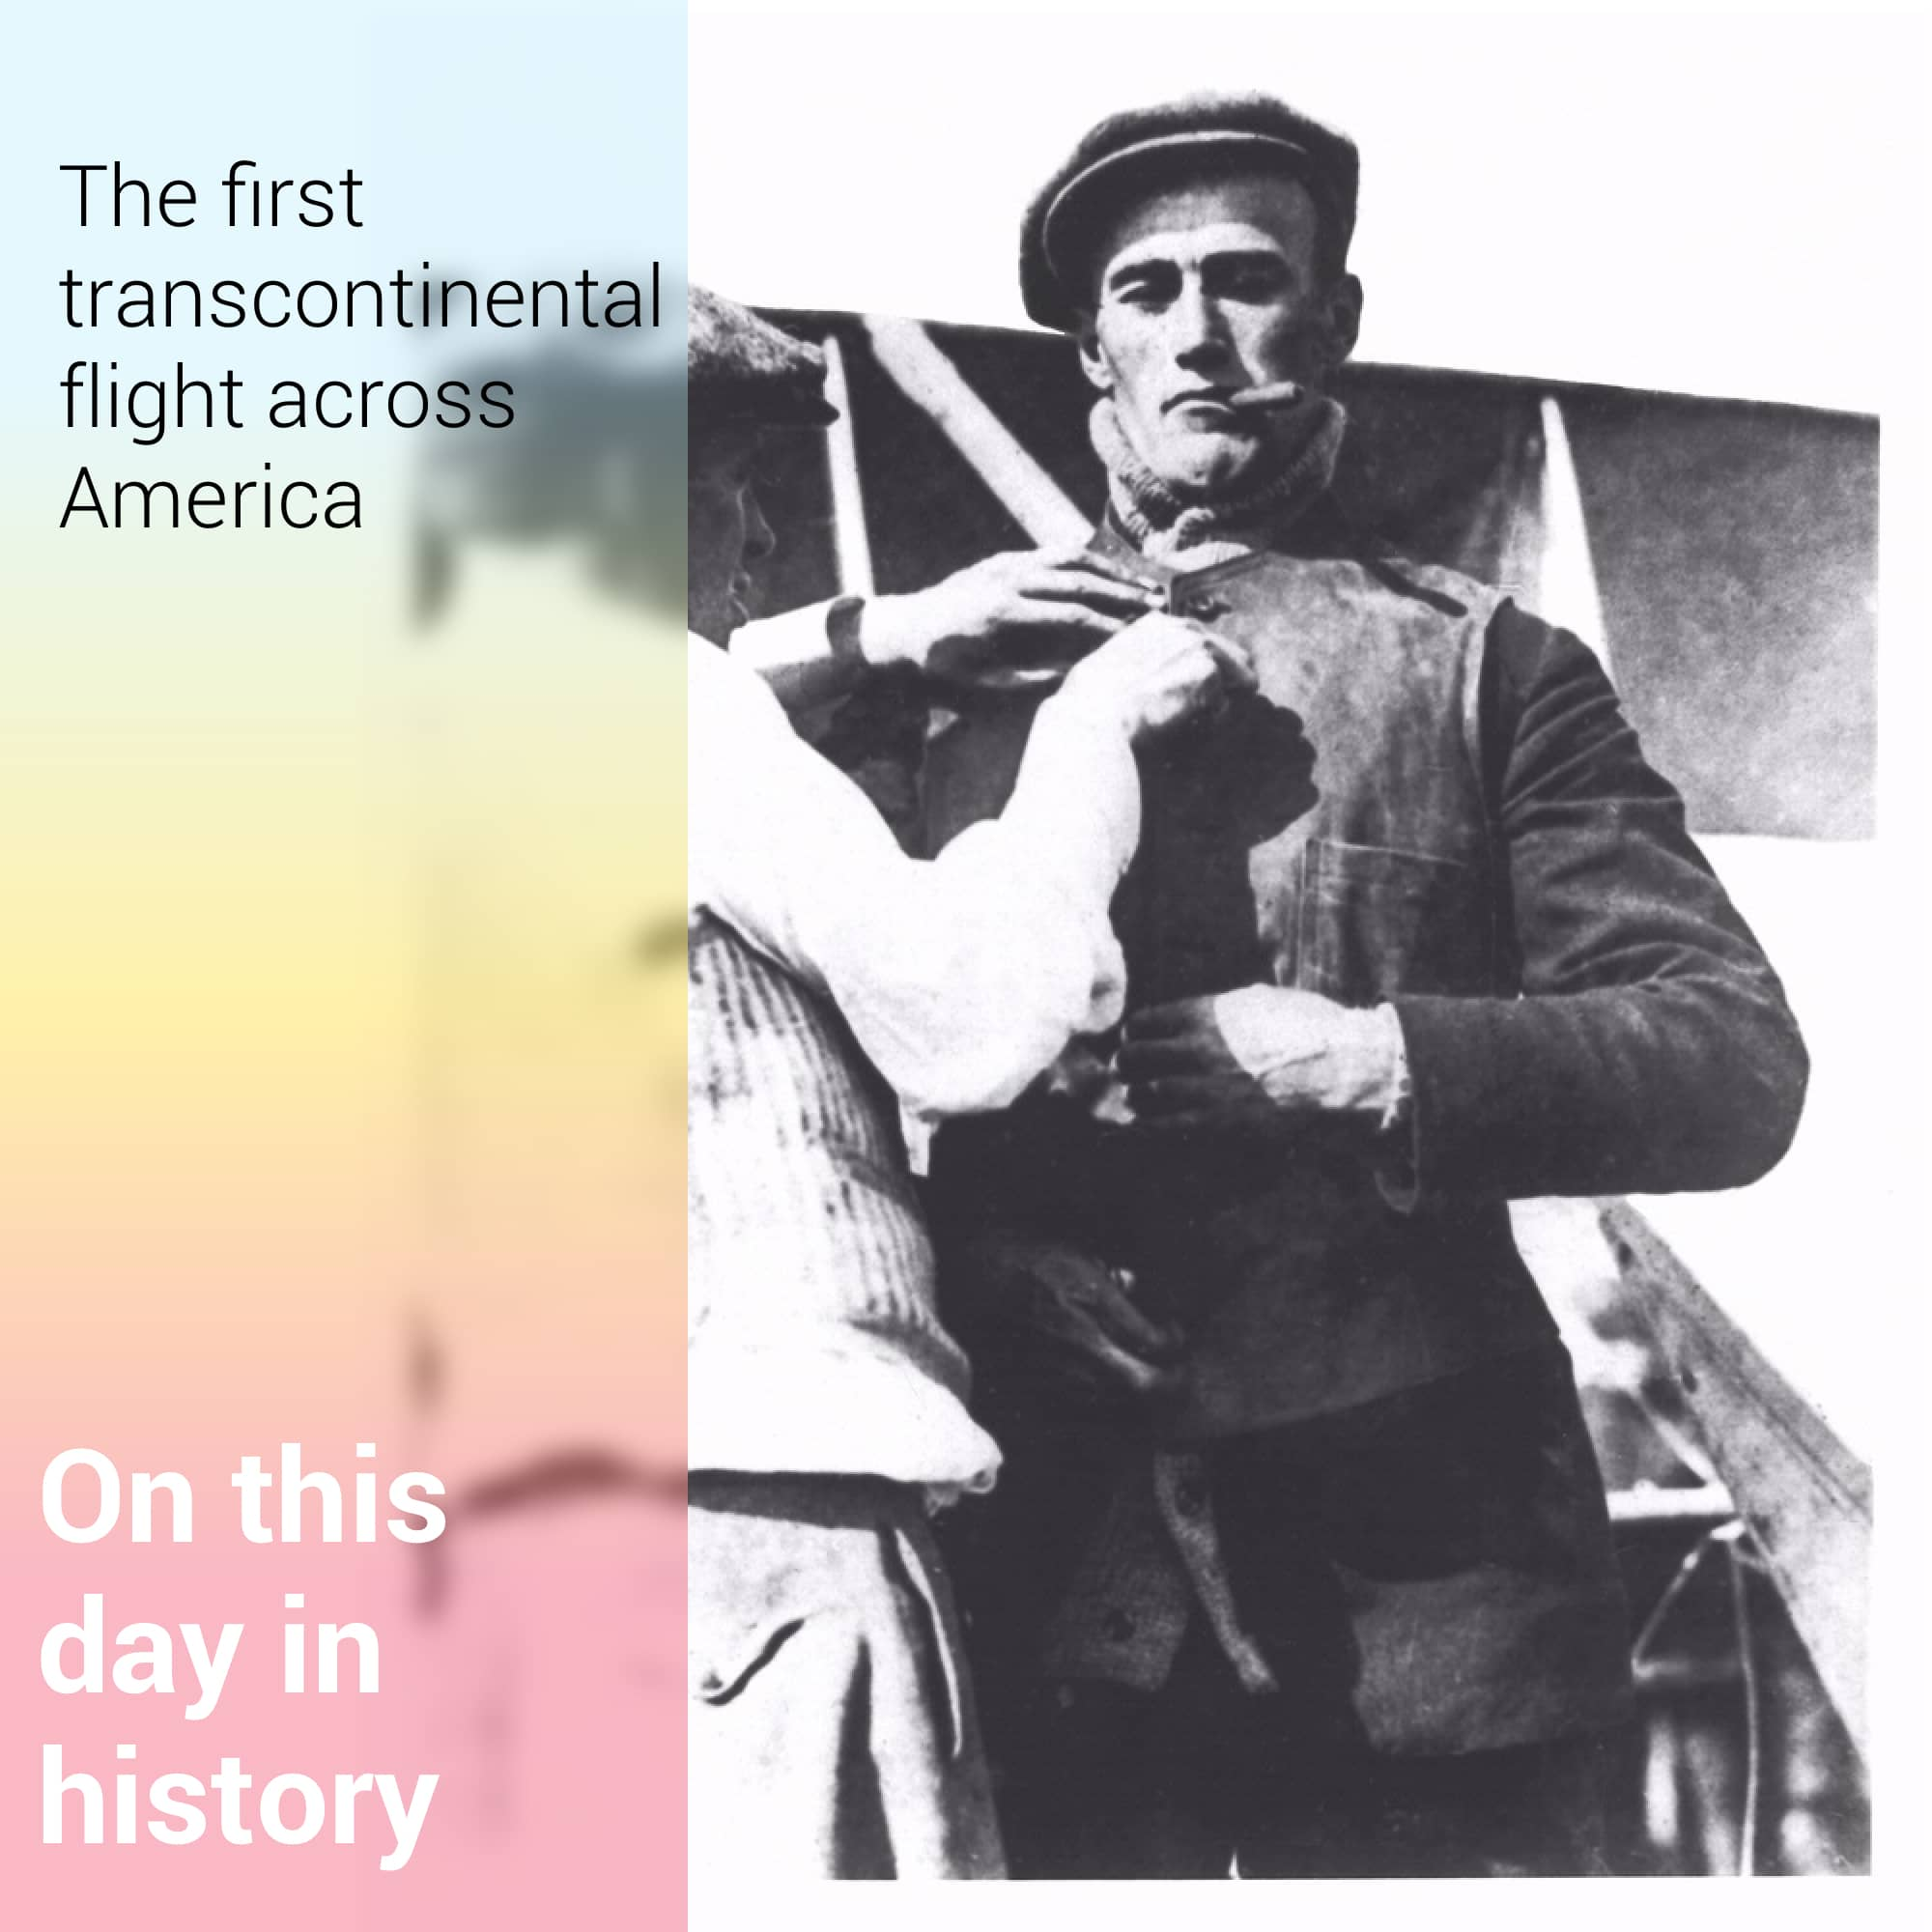 The First Transcontinental Flight